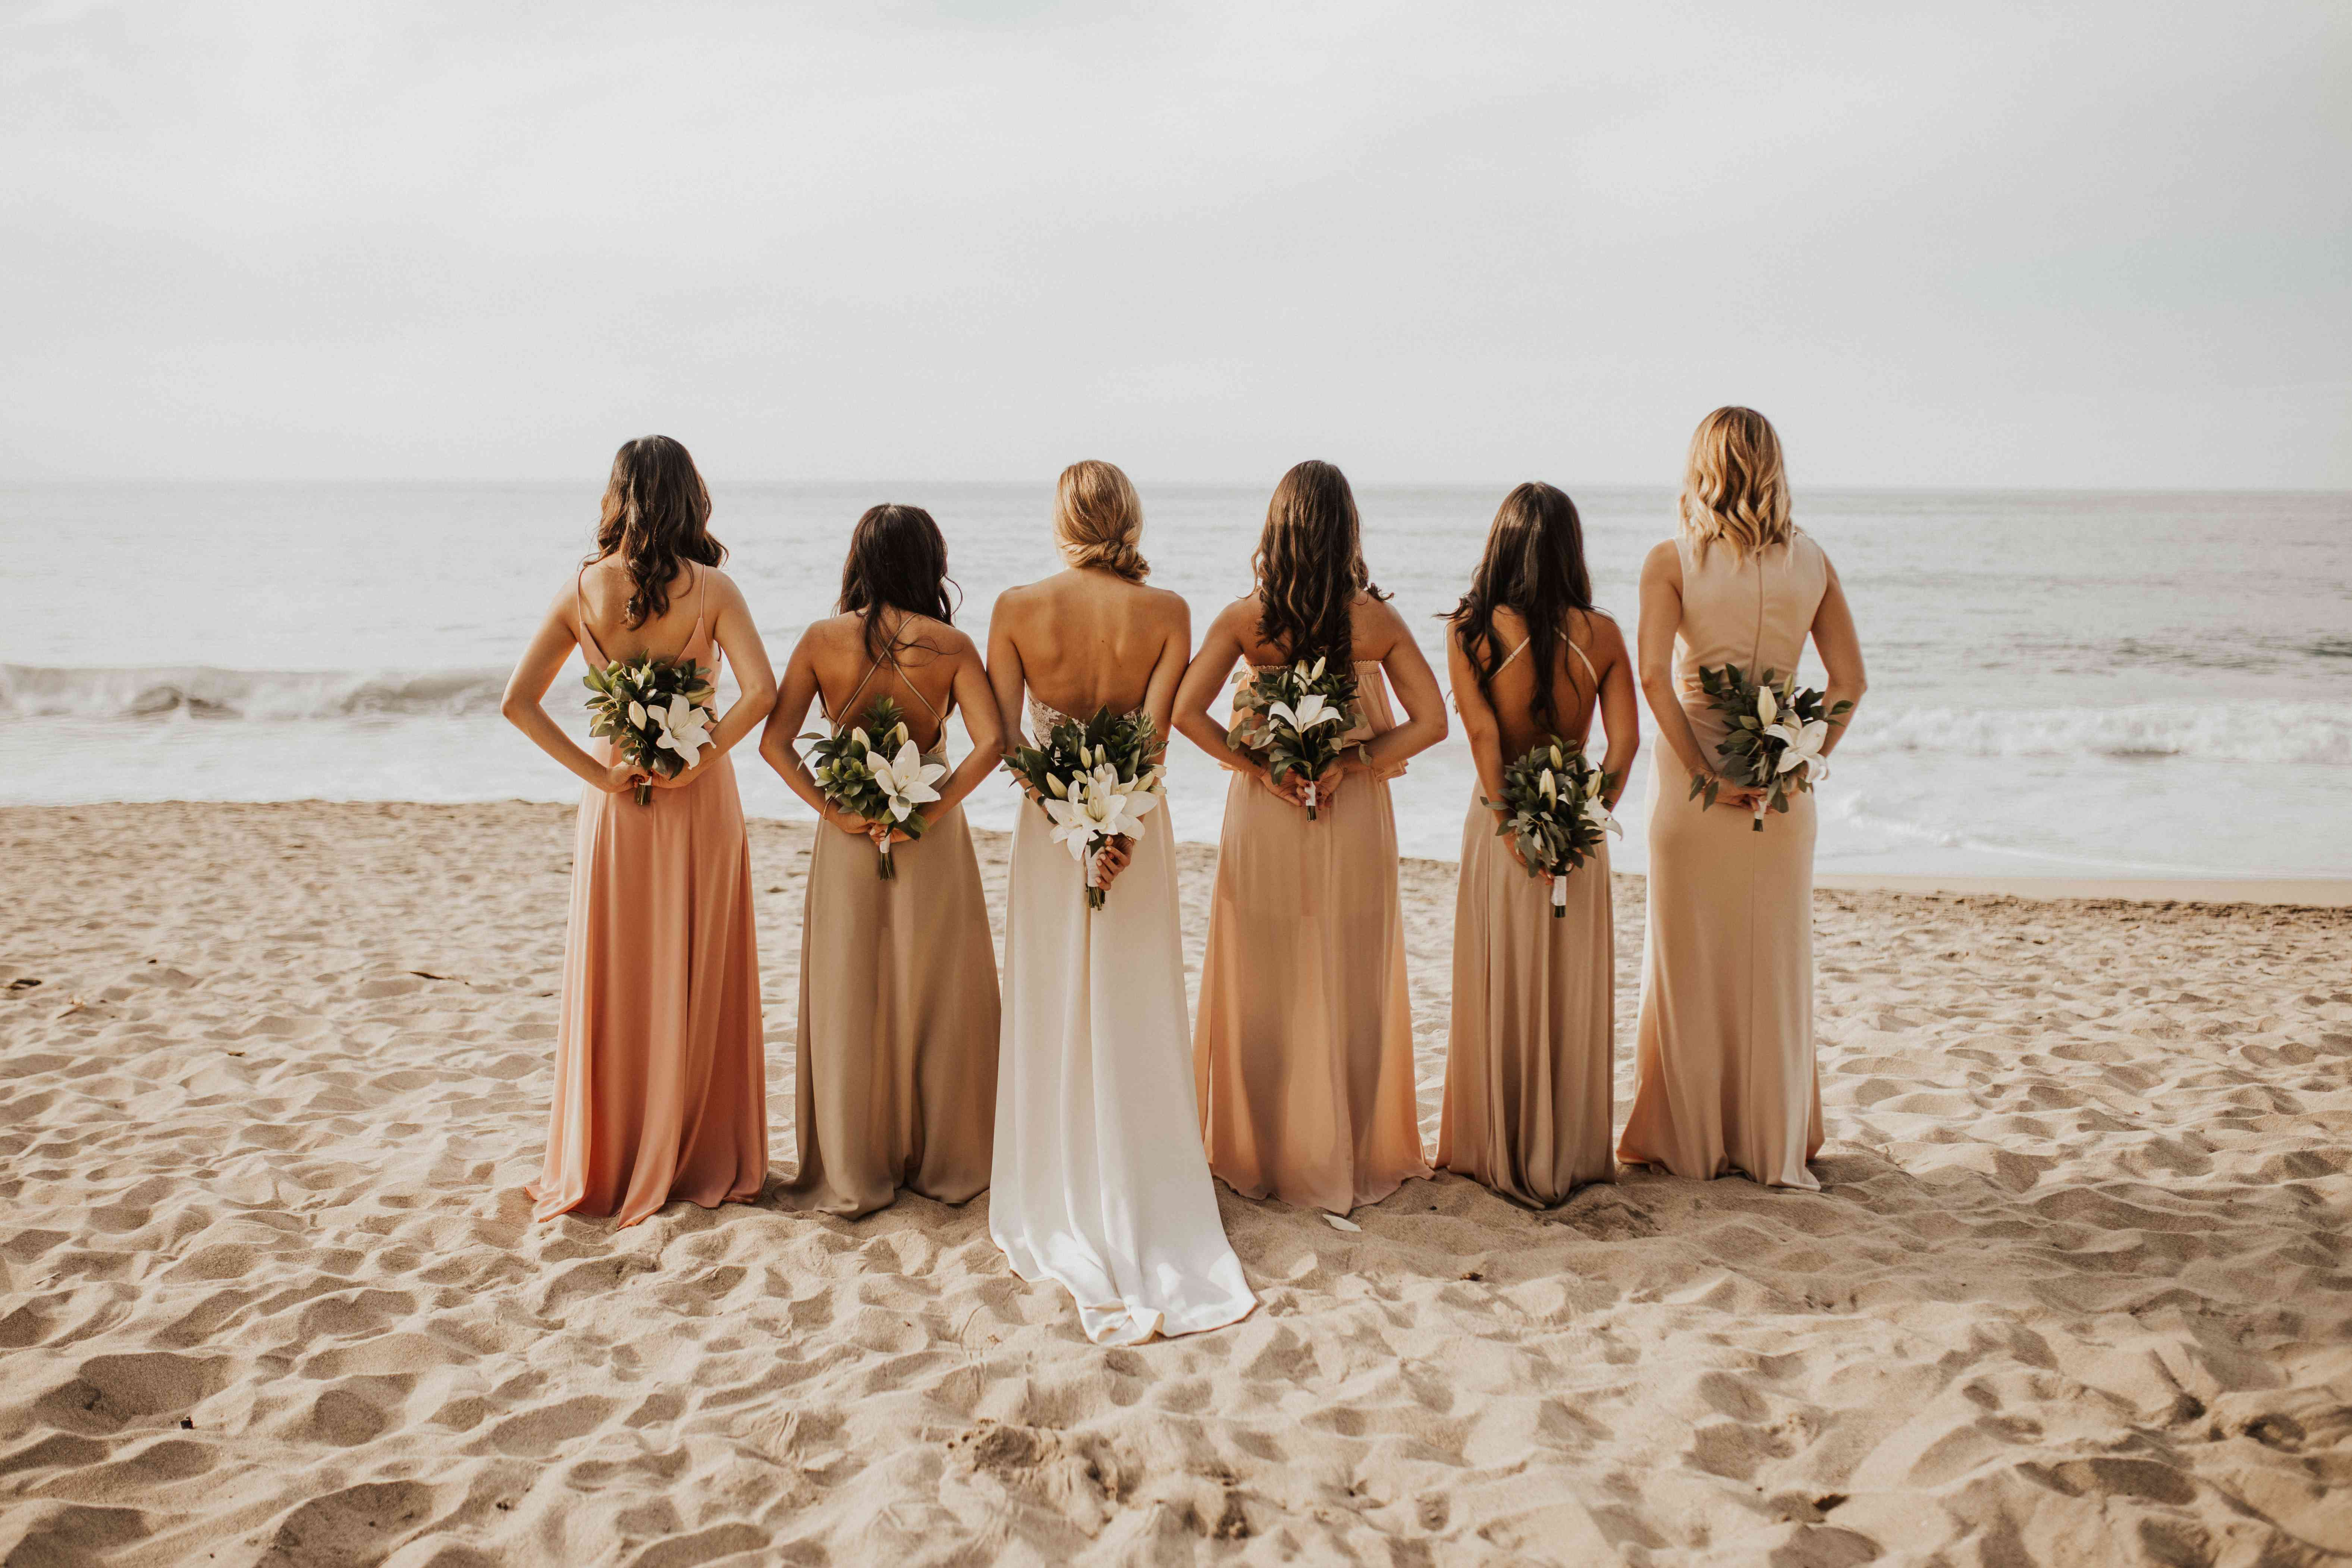 Bridesmaids and bride looking out at ocean with bouquets behind their backs